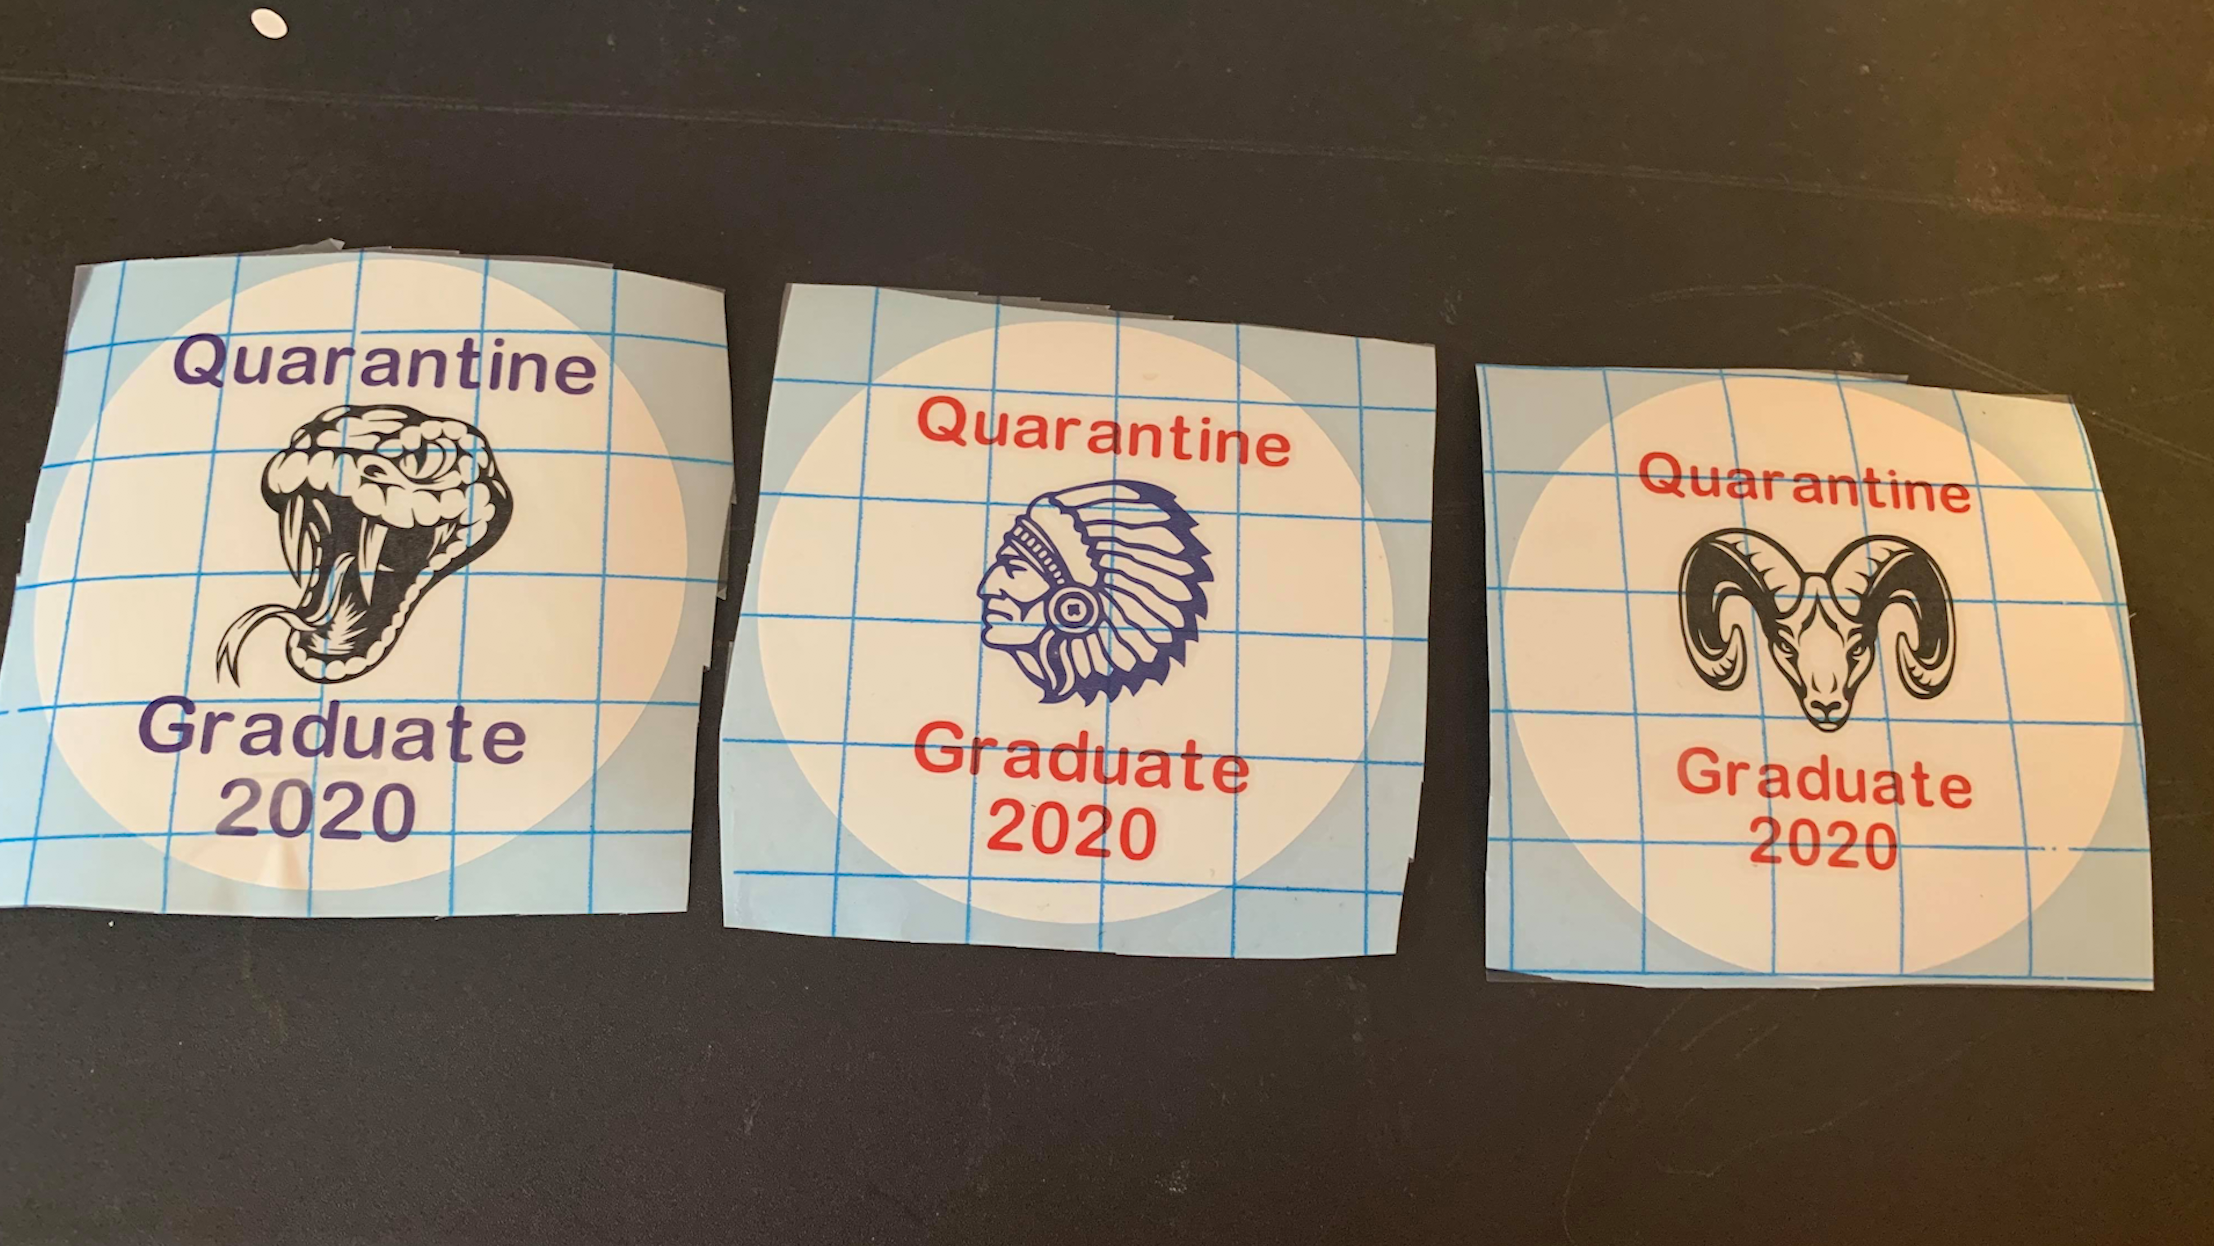 Quarantine graduate stickers